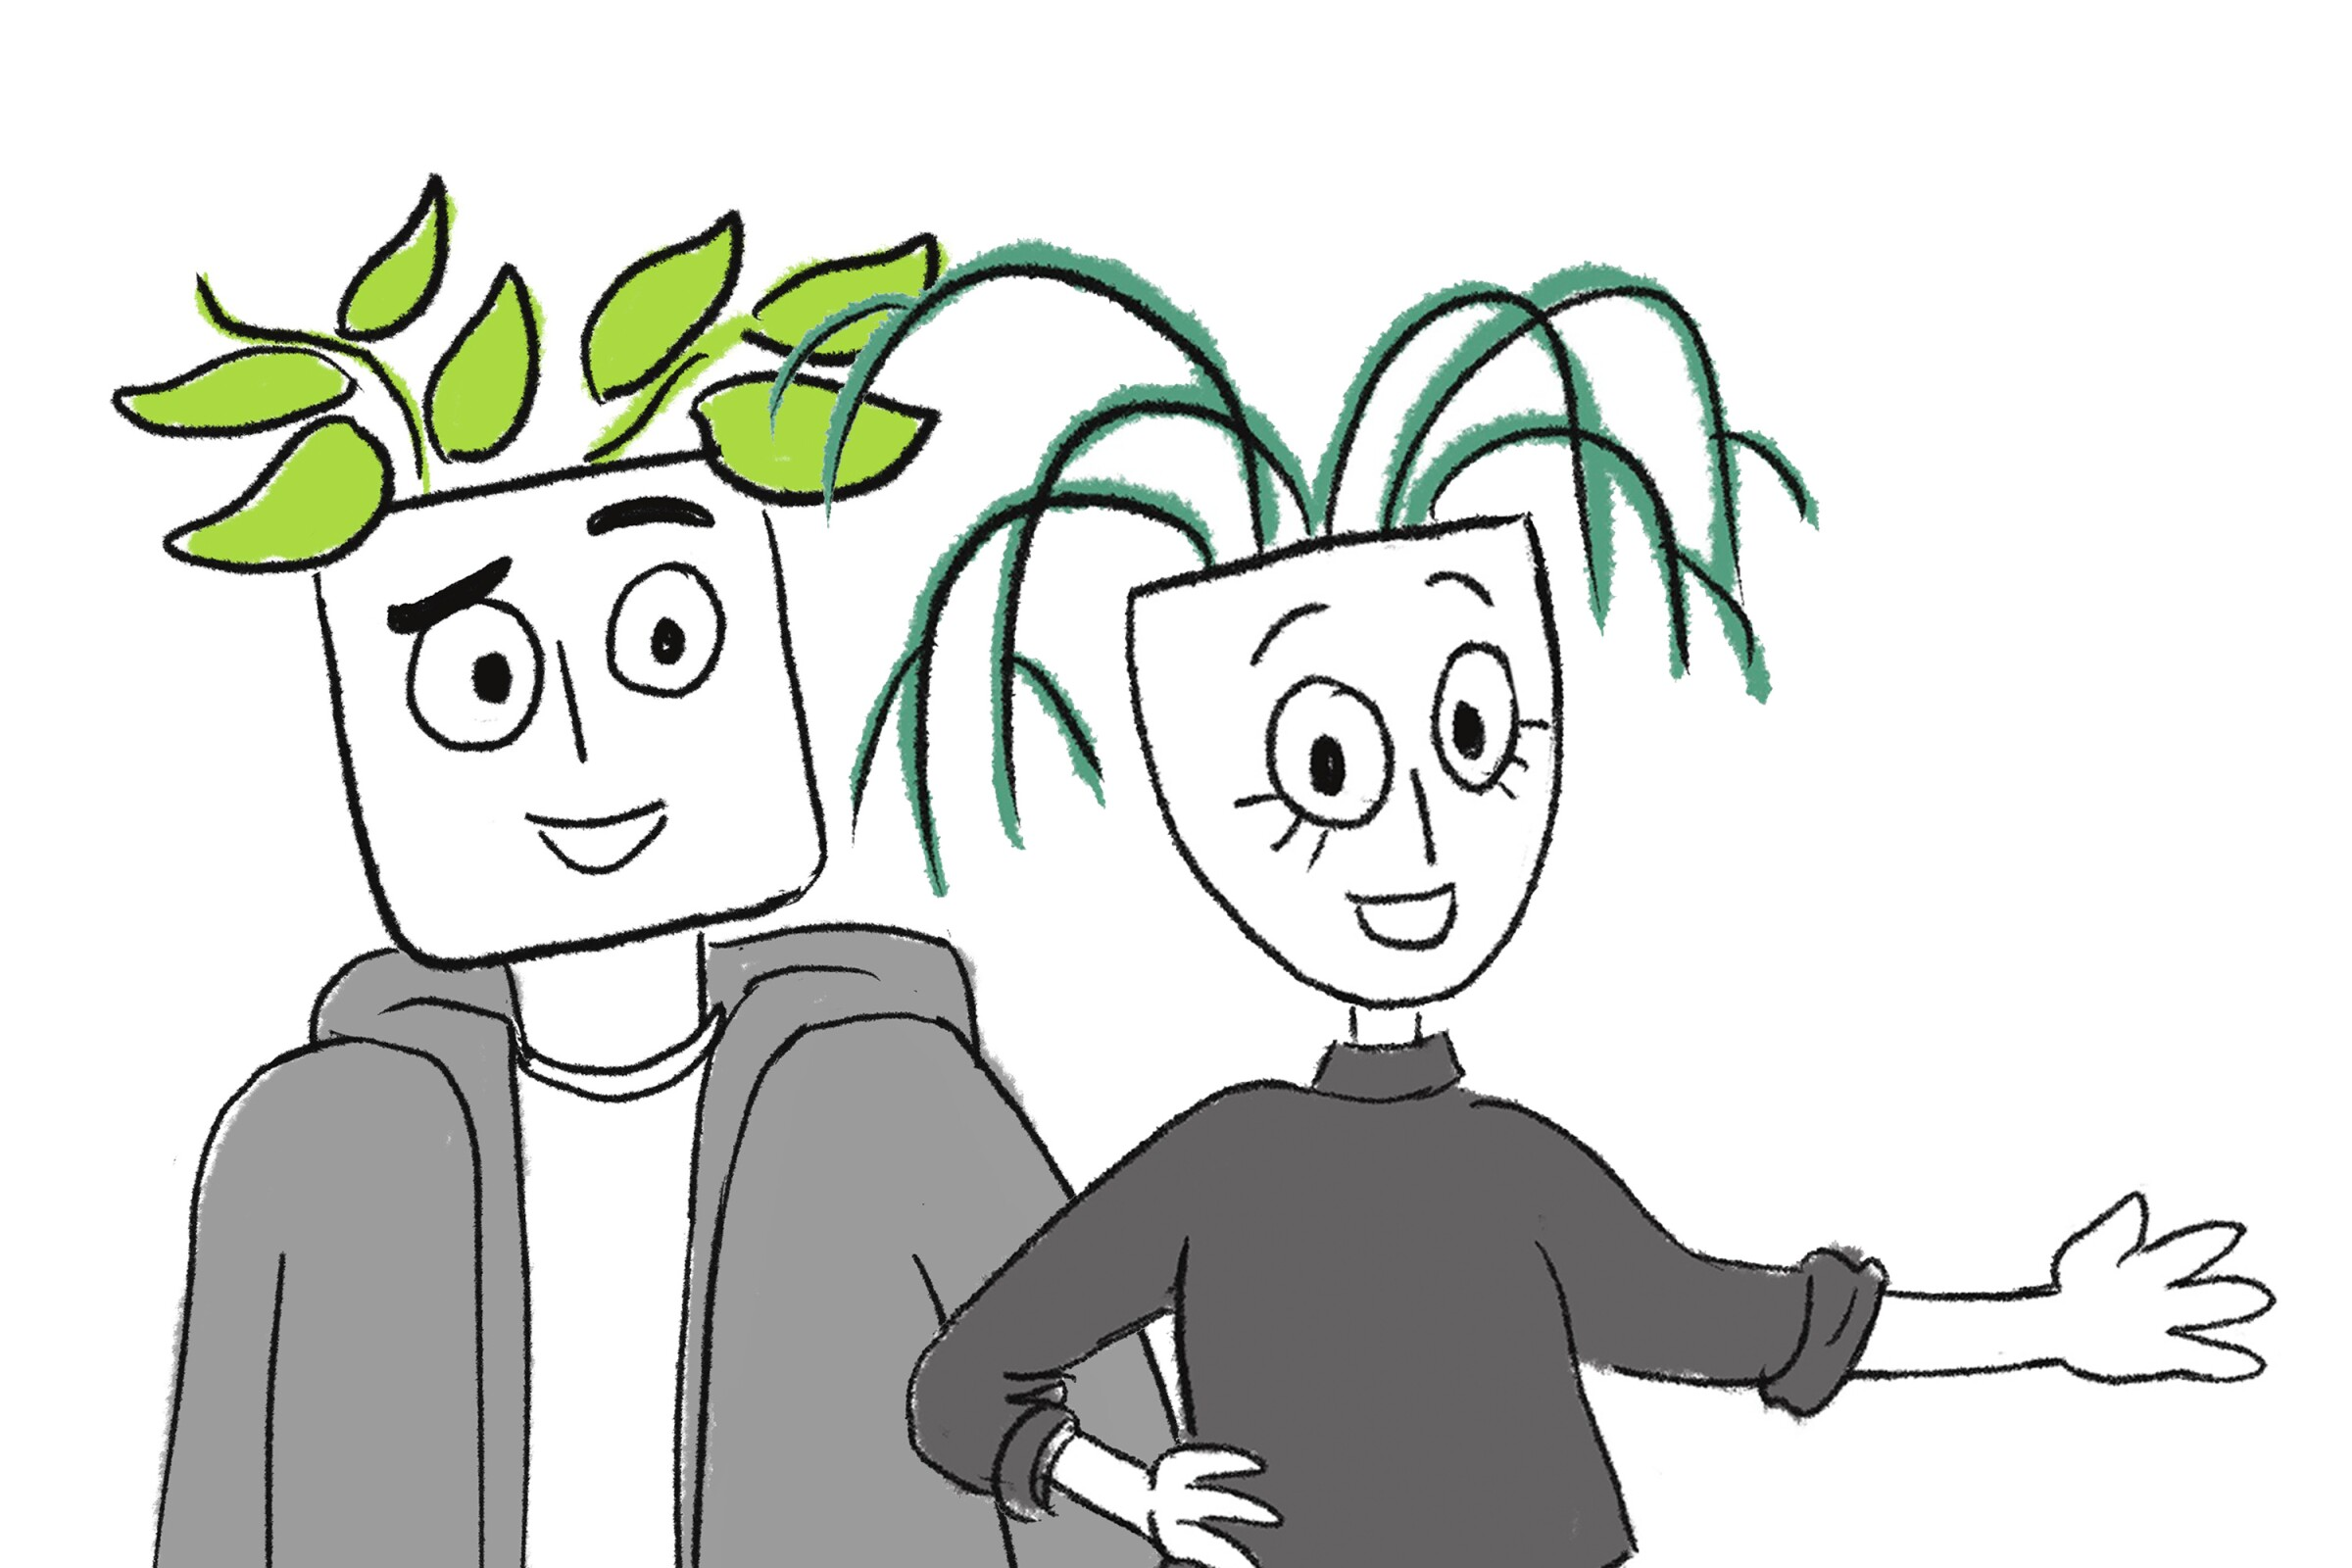 Pot Heads plant illustration